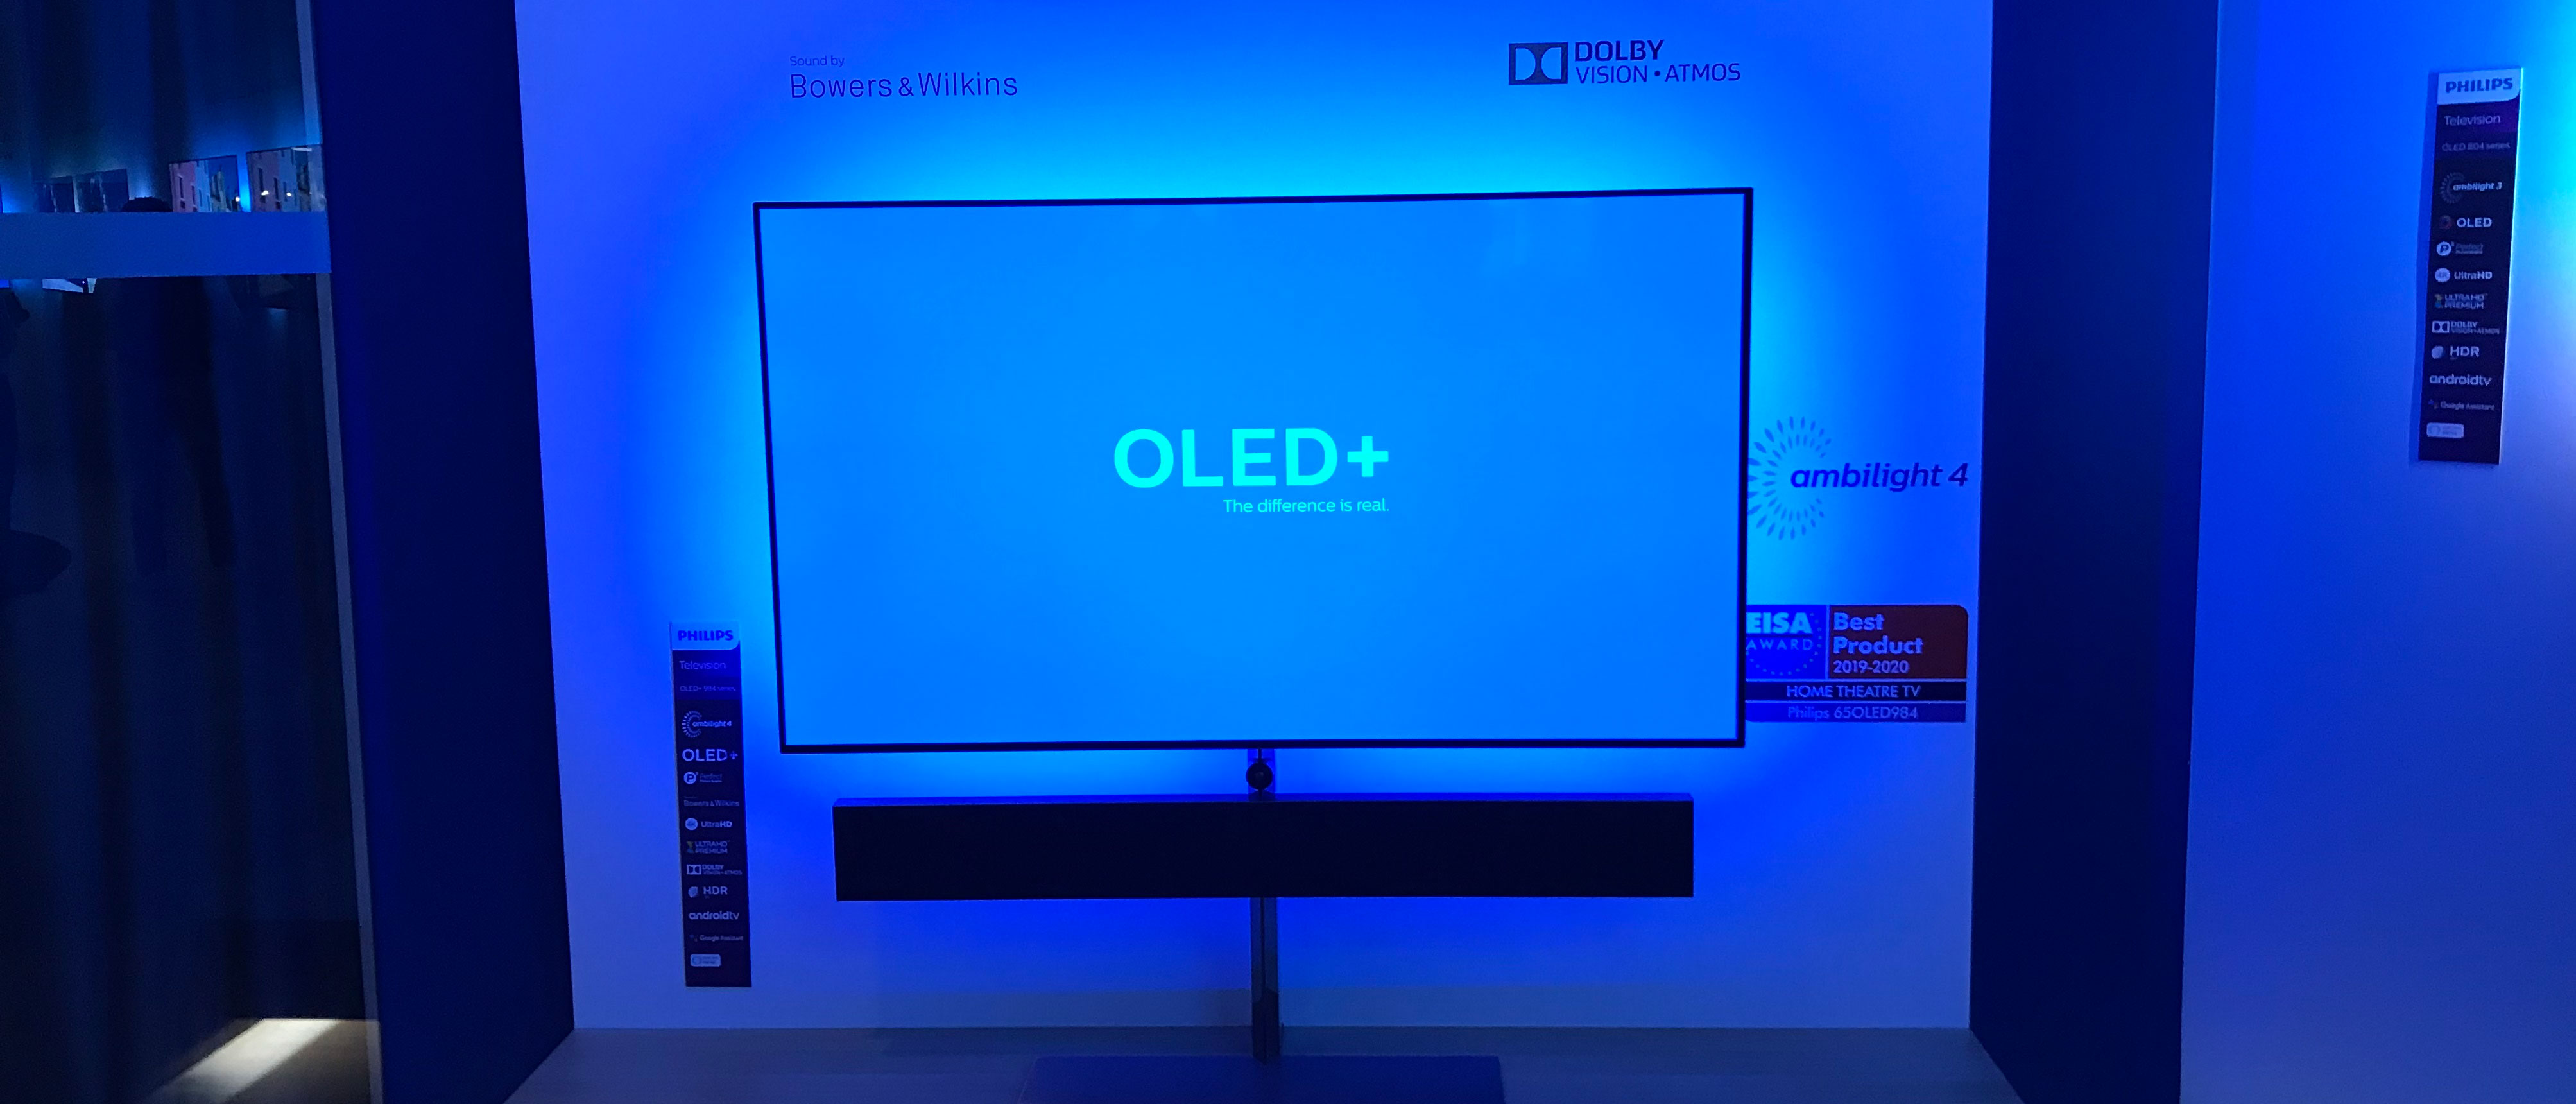 Hands on: Philips OLED+984 review | TechRadar